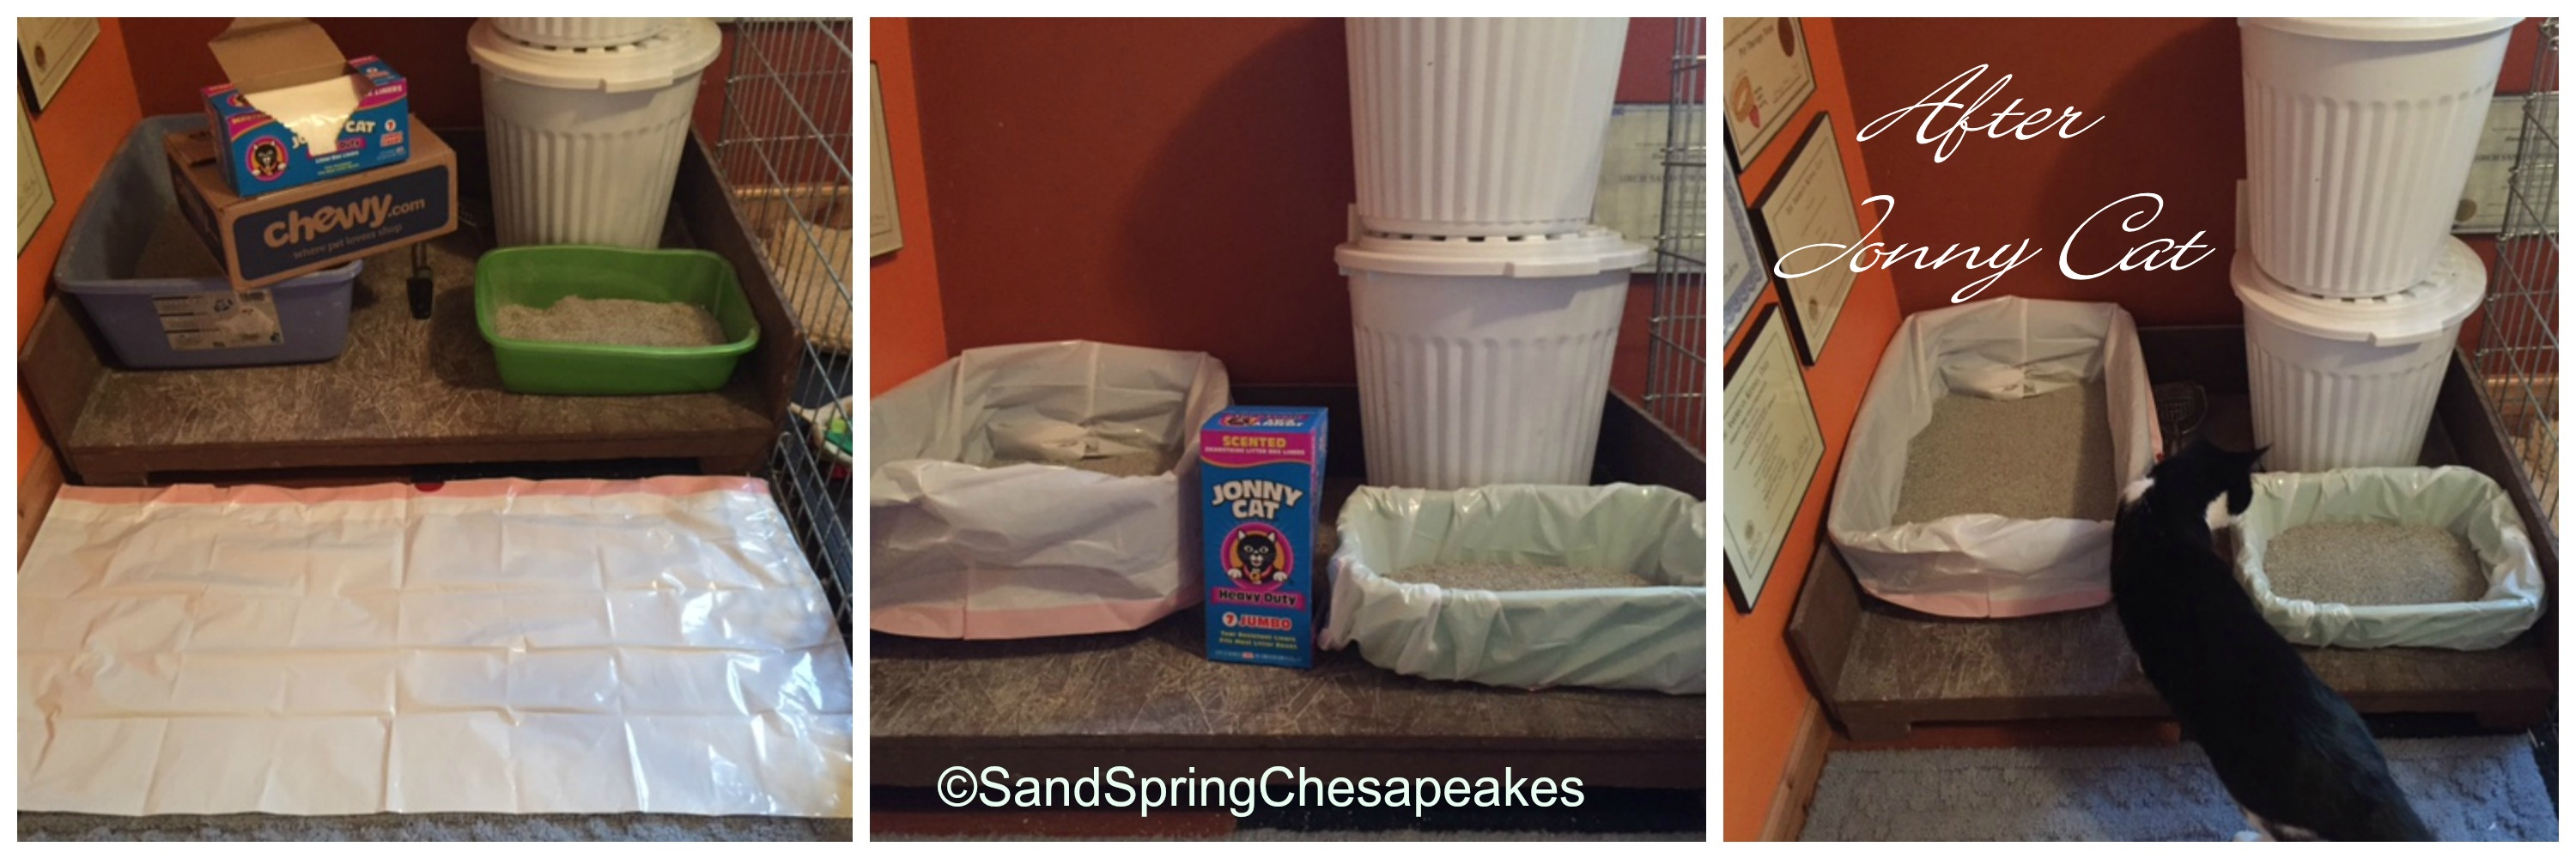 Chewy Review Sand Spring Chesapeakes